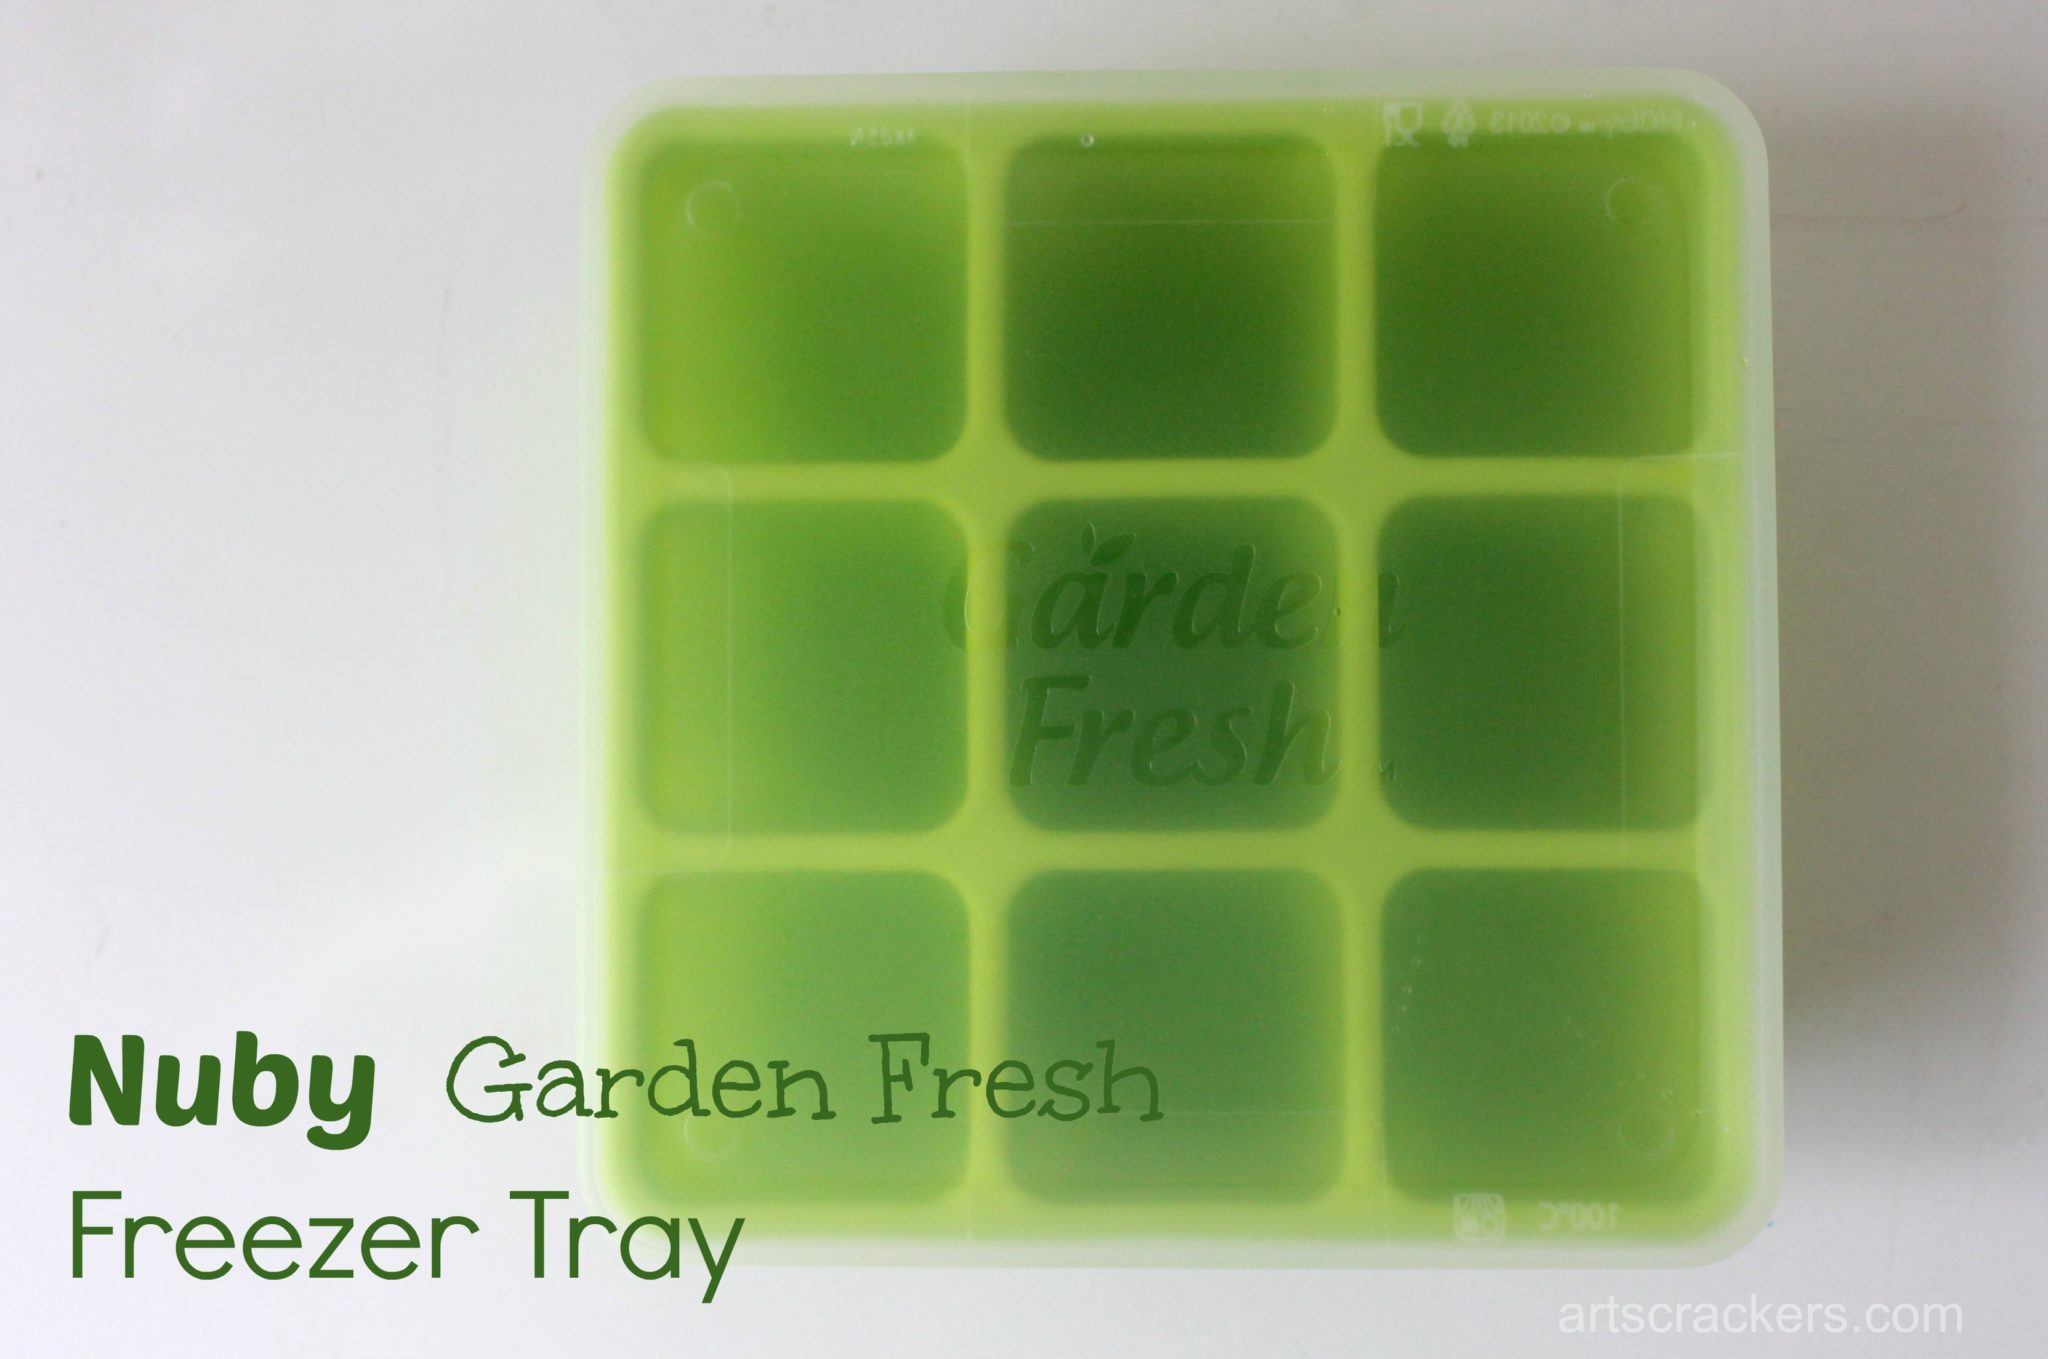 Nuby Garden Fresh Freezer Tray. Click the picture to read the review.